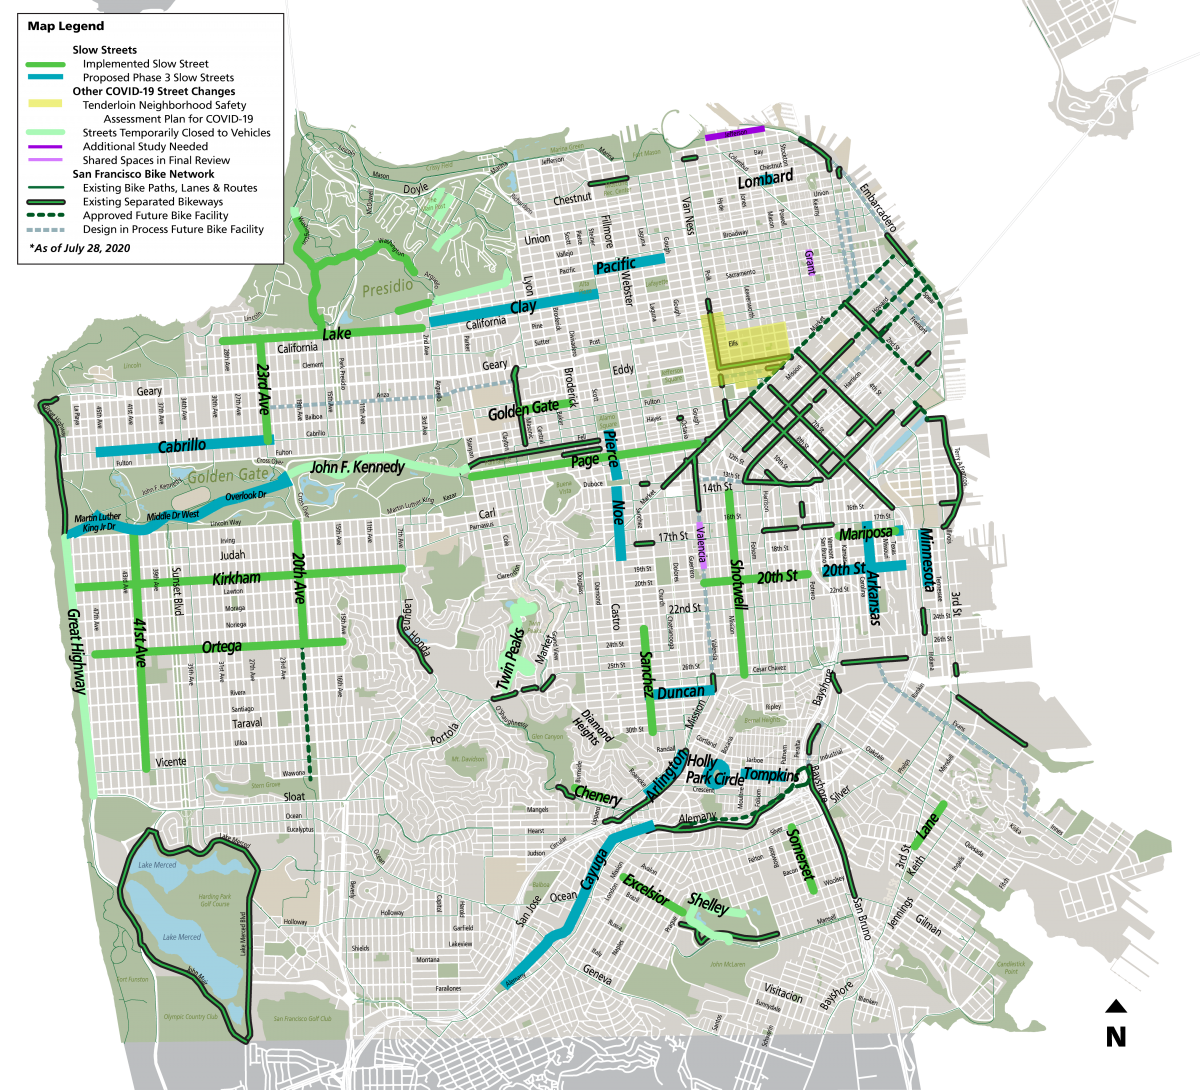 Slow Streets, Shared Spaces and Bike Network Map